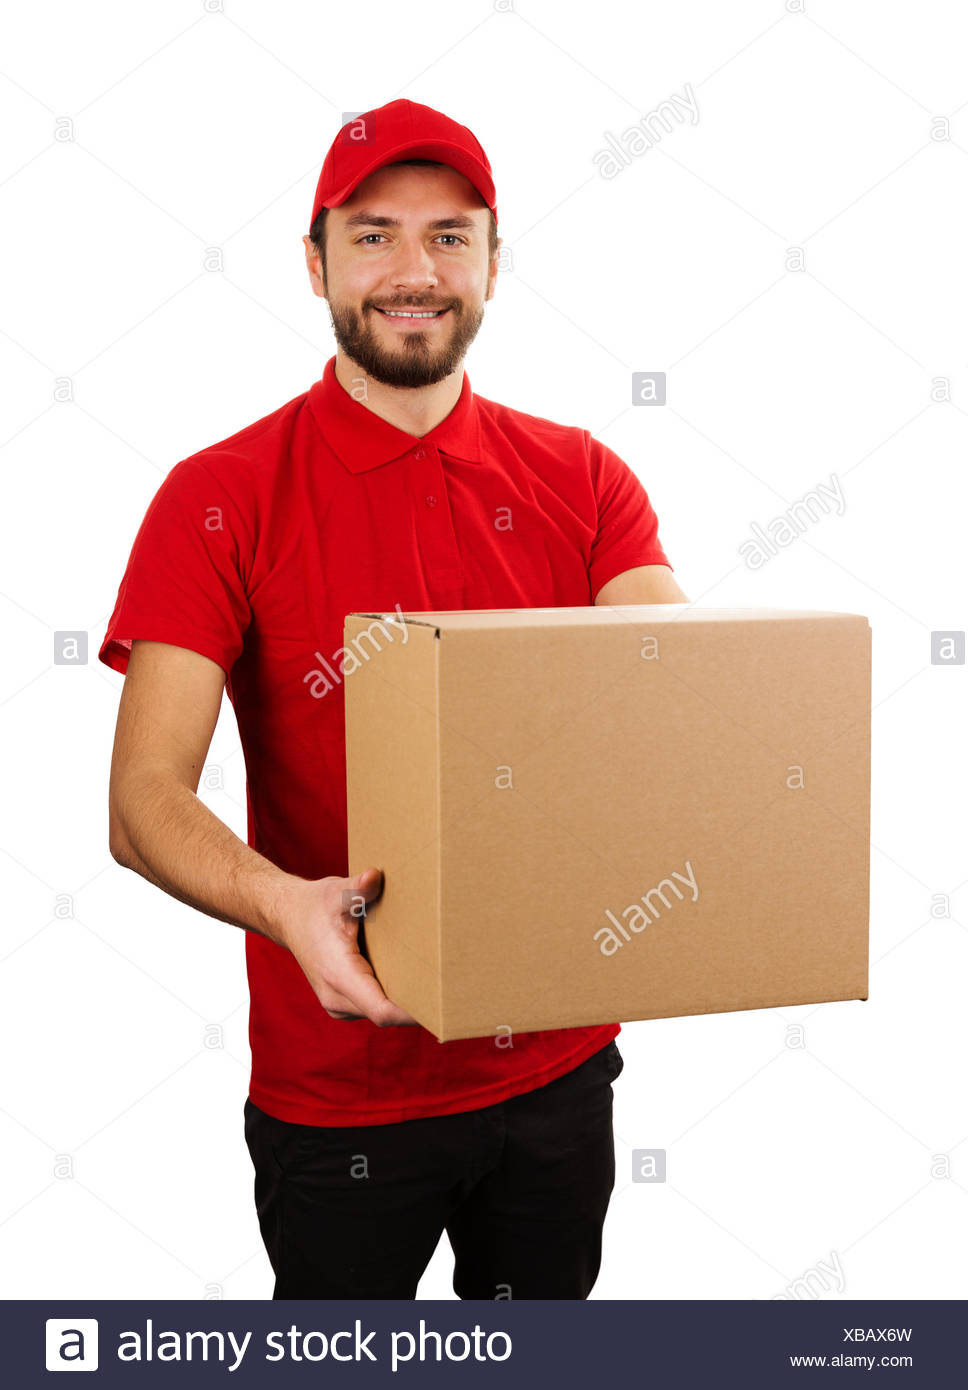 delivery service - young smiling courier holding cardboard box - Stock Image